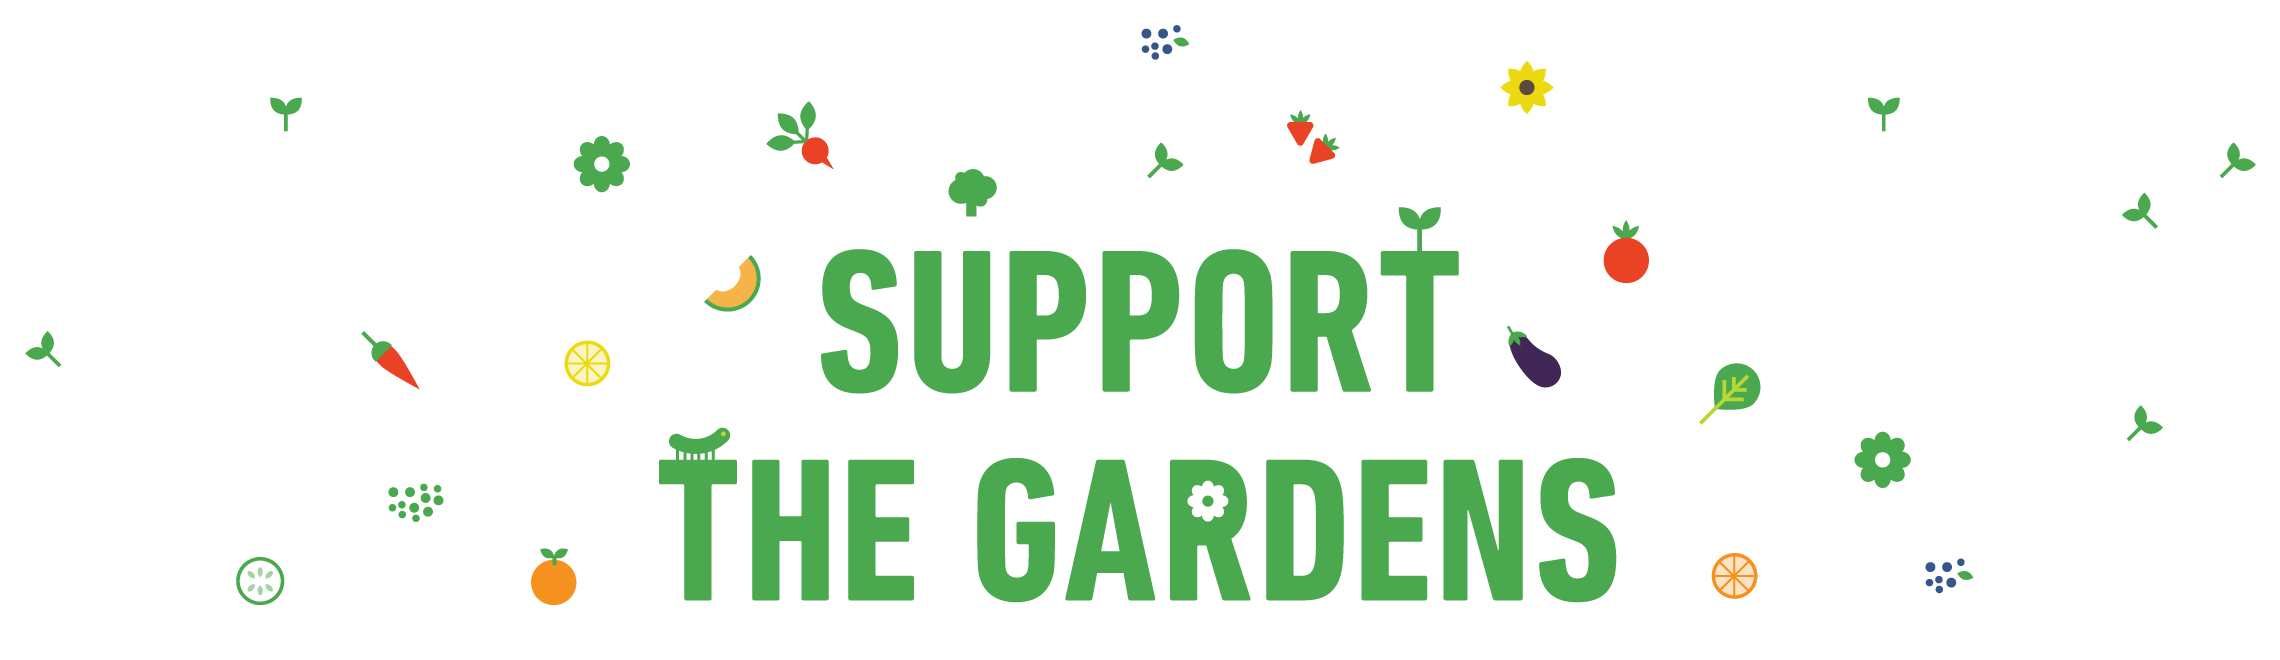 Support the Gardens